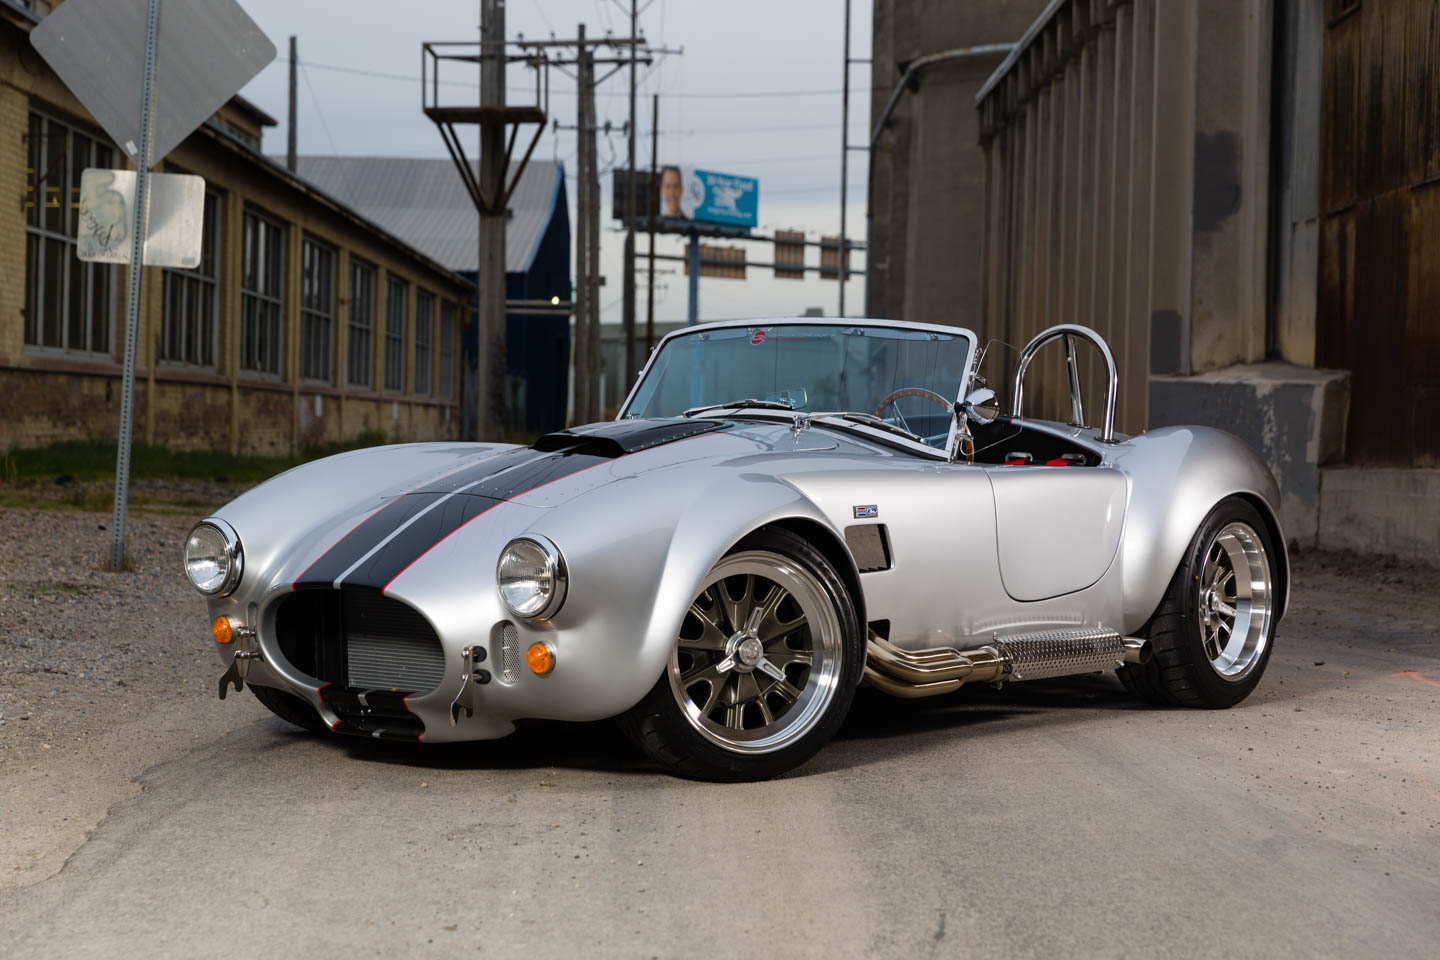 Awesome Lights Photographing 1965 Shelby Cobra Replica Cars Dav D